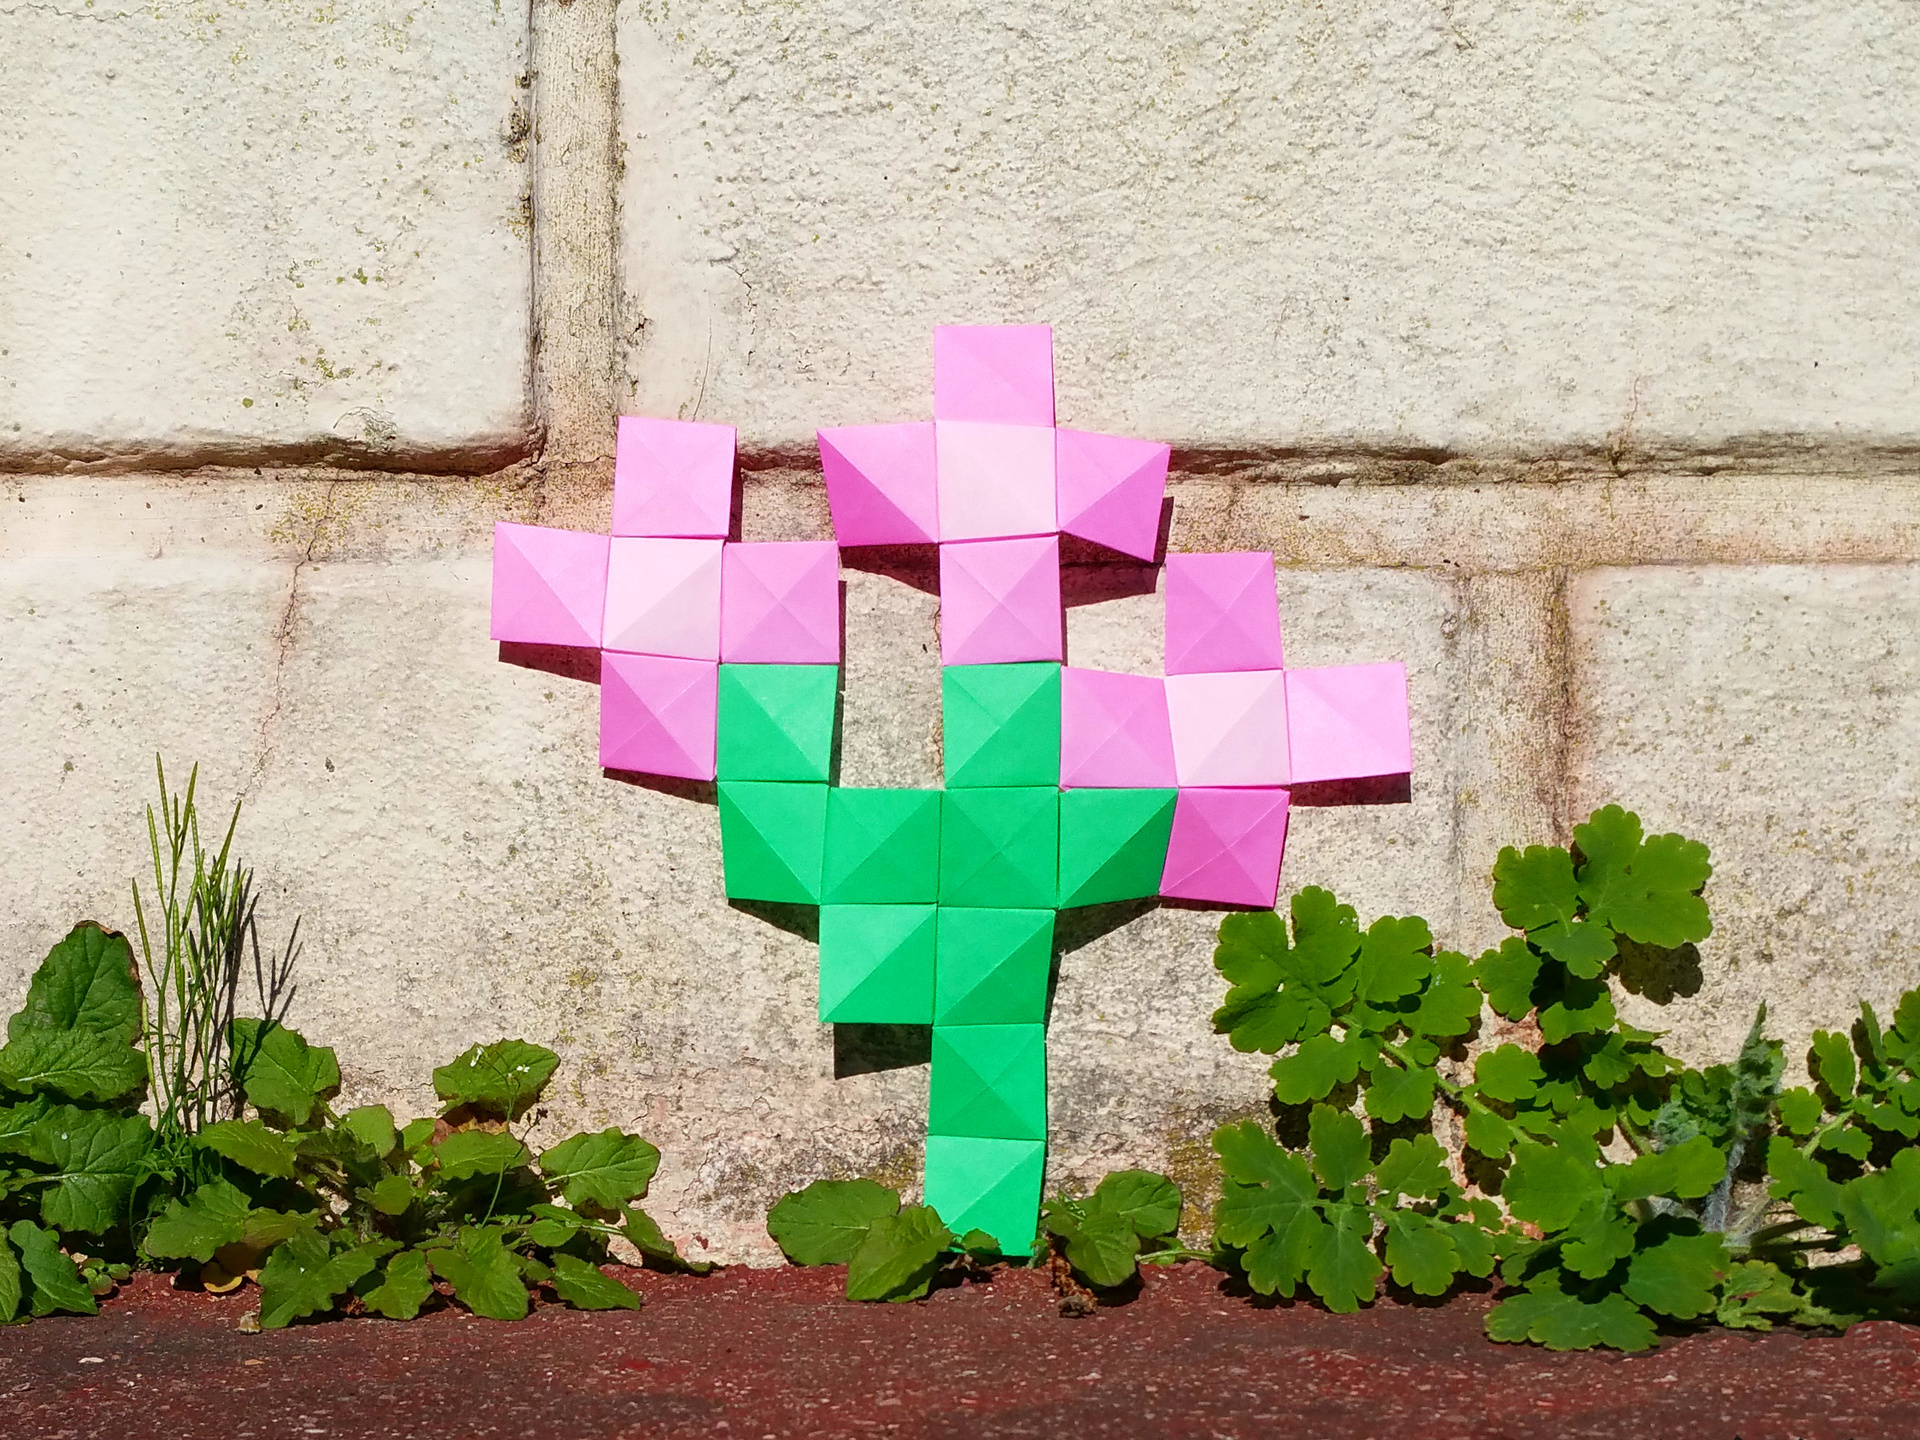 Low Tech Augmented Reality Origami Pixels Flowers